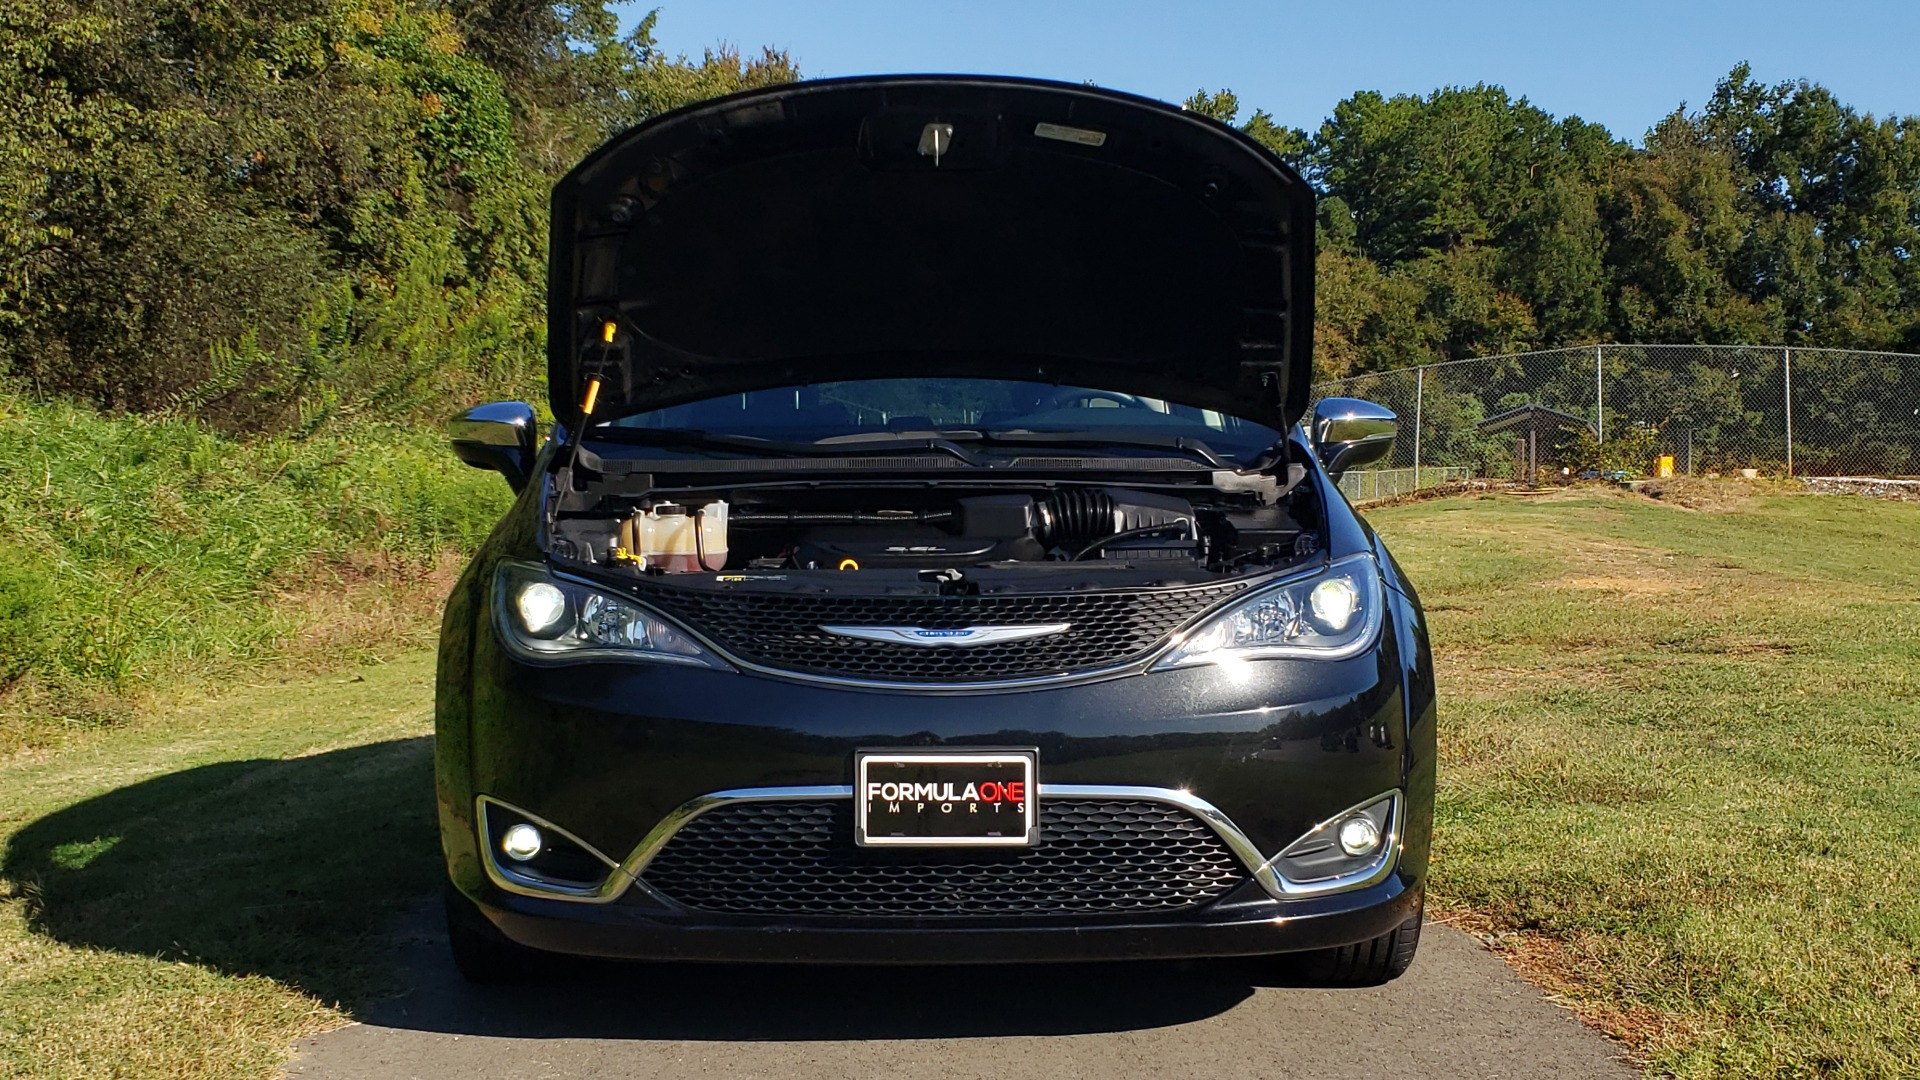 Used 2018 Chrysler PACIFICA LIMITED / 3.6L V6 / NAV / PANO-ROOF / 3-ROWS / REARVIEW for sale Sold at Formula Imports in Charlotte NC 28227 19